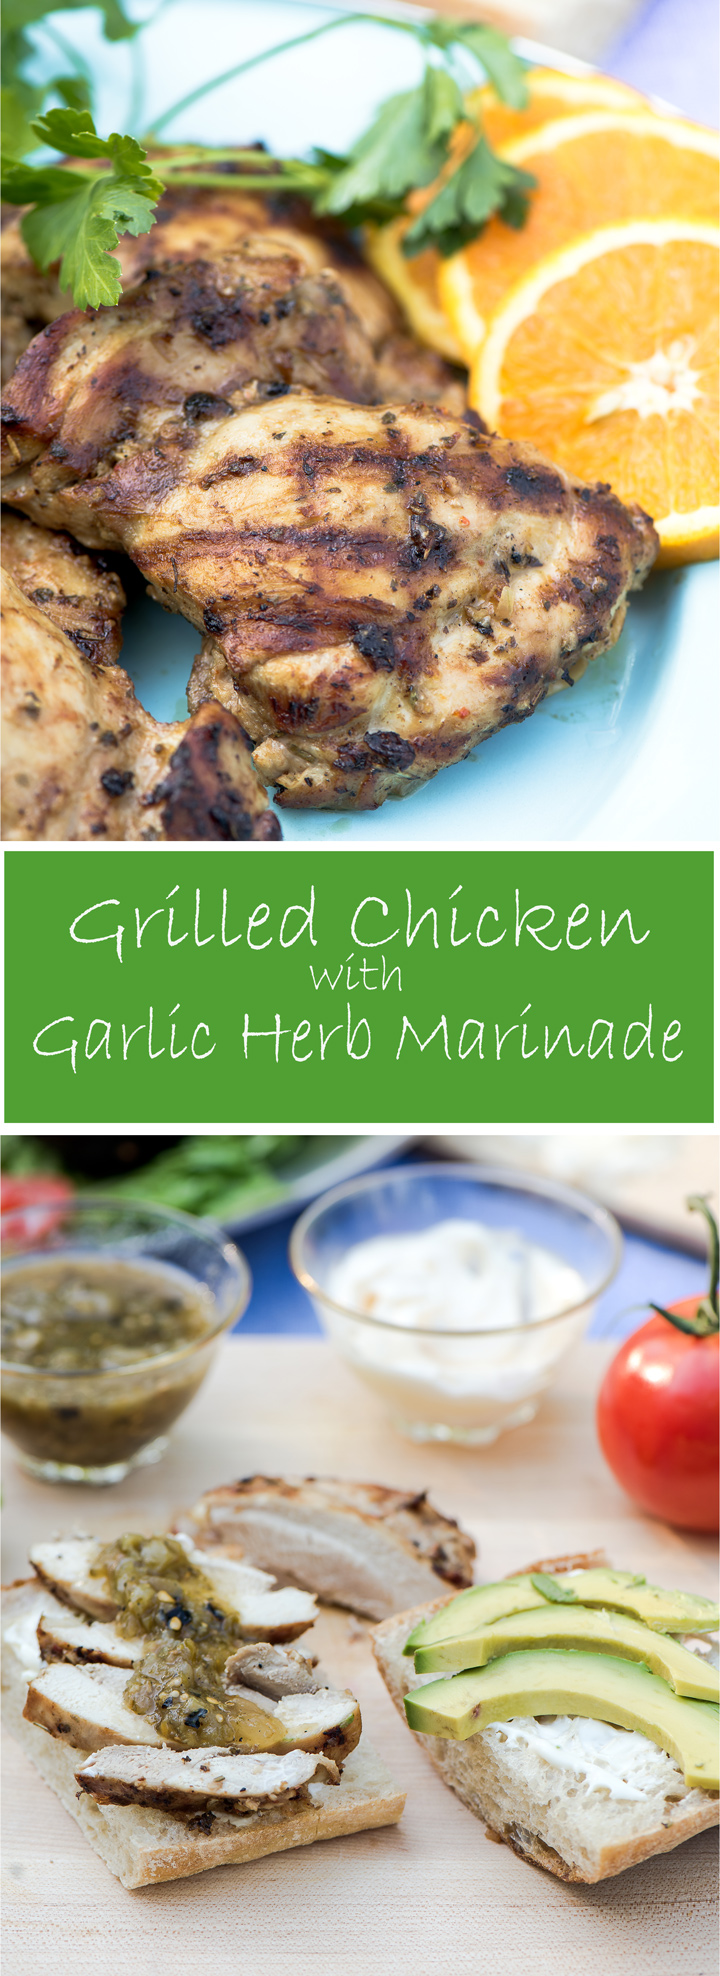 Grilled Chicken with Garlic Herb Marinade. An easy grilled chicken recipe with a simple marinade. Marinate boneless, skinless chicken thighs or chicken breasts for delicious sandwiches. Or serve for a grilled chicken dinner.